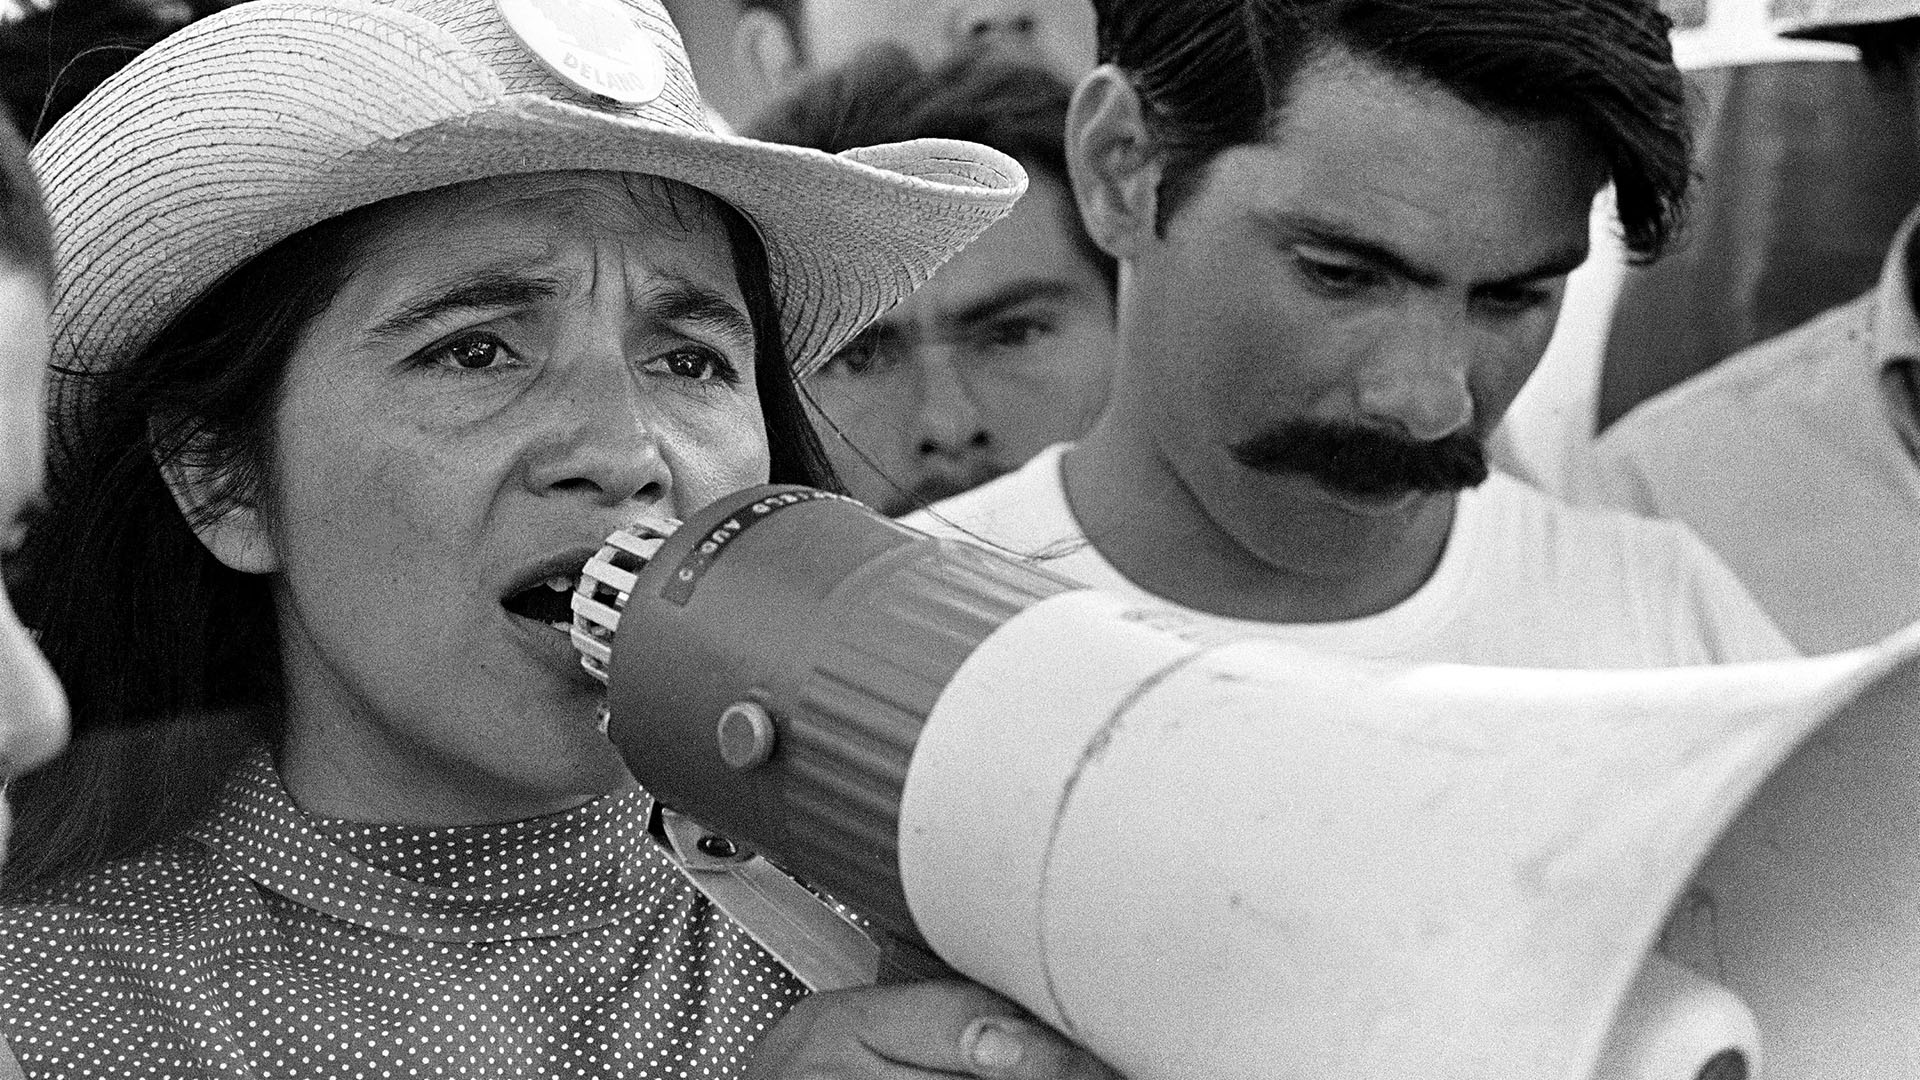 Labor leader Dolores Huerta profiled in new film, part of Indie Lens Pop-Up series